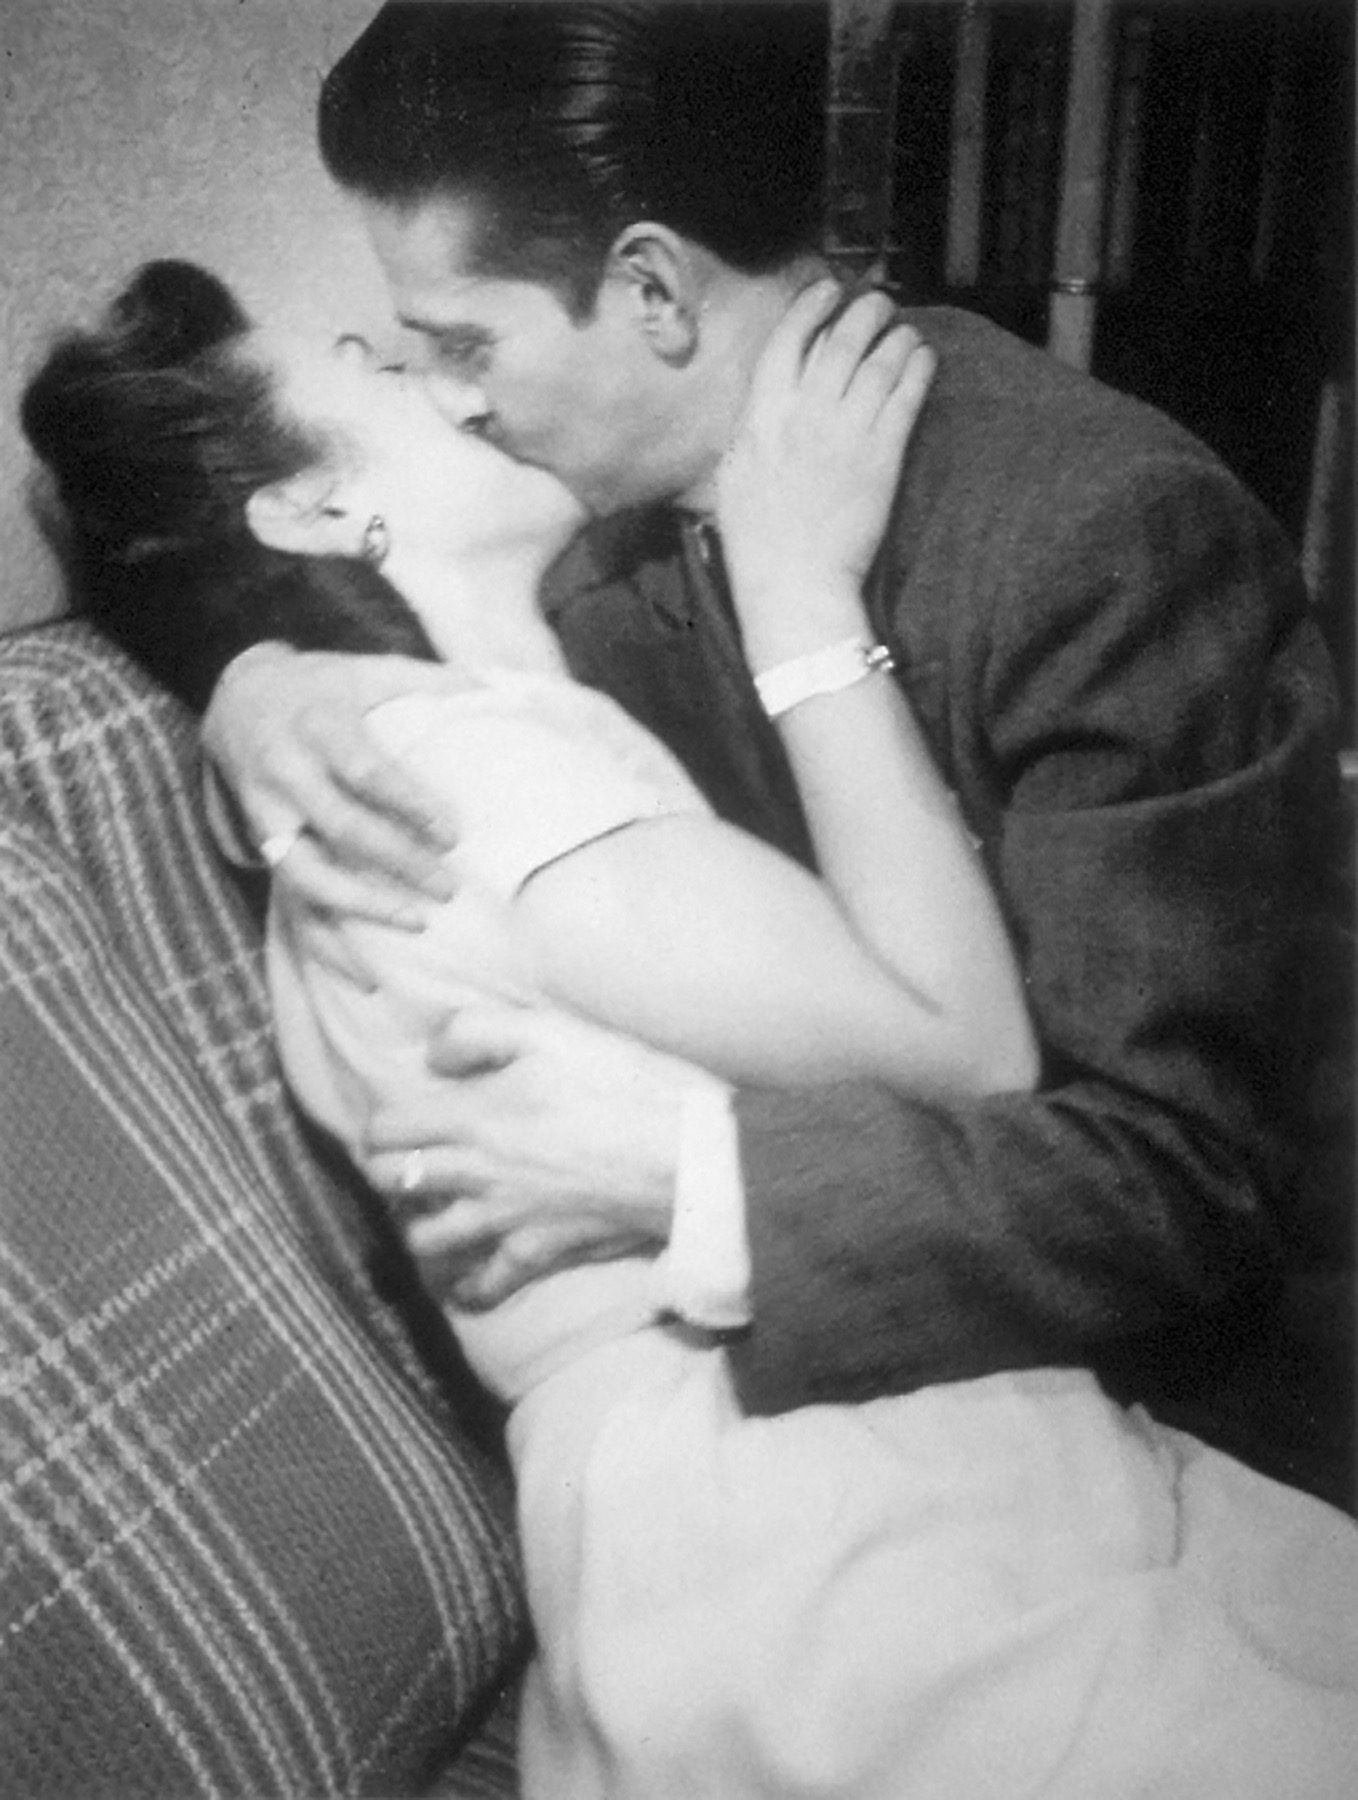 Irving Fistell, The Kiss, circ 1940's- 50's